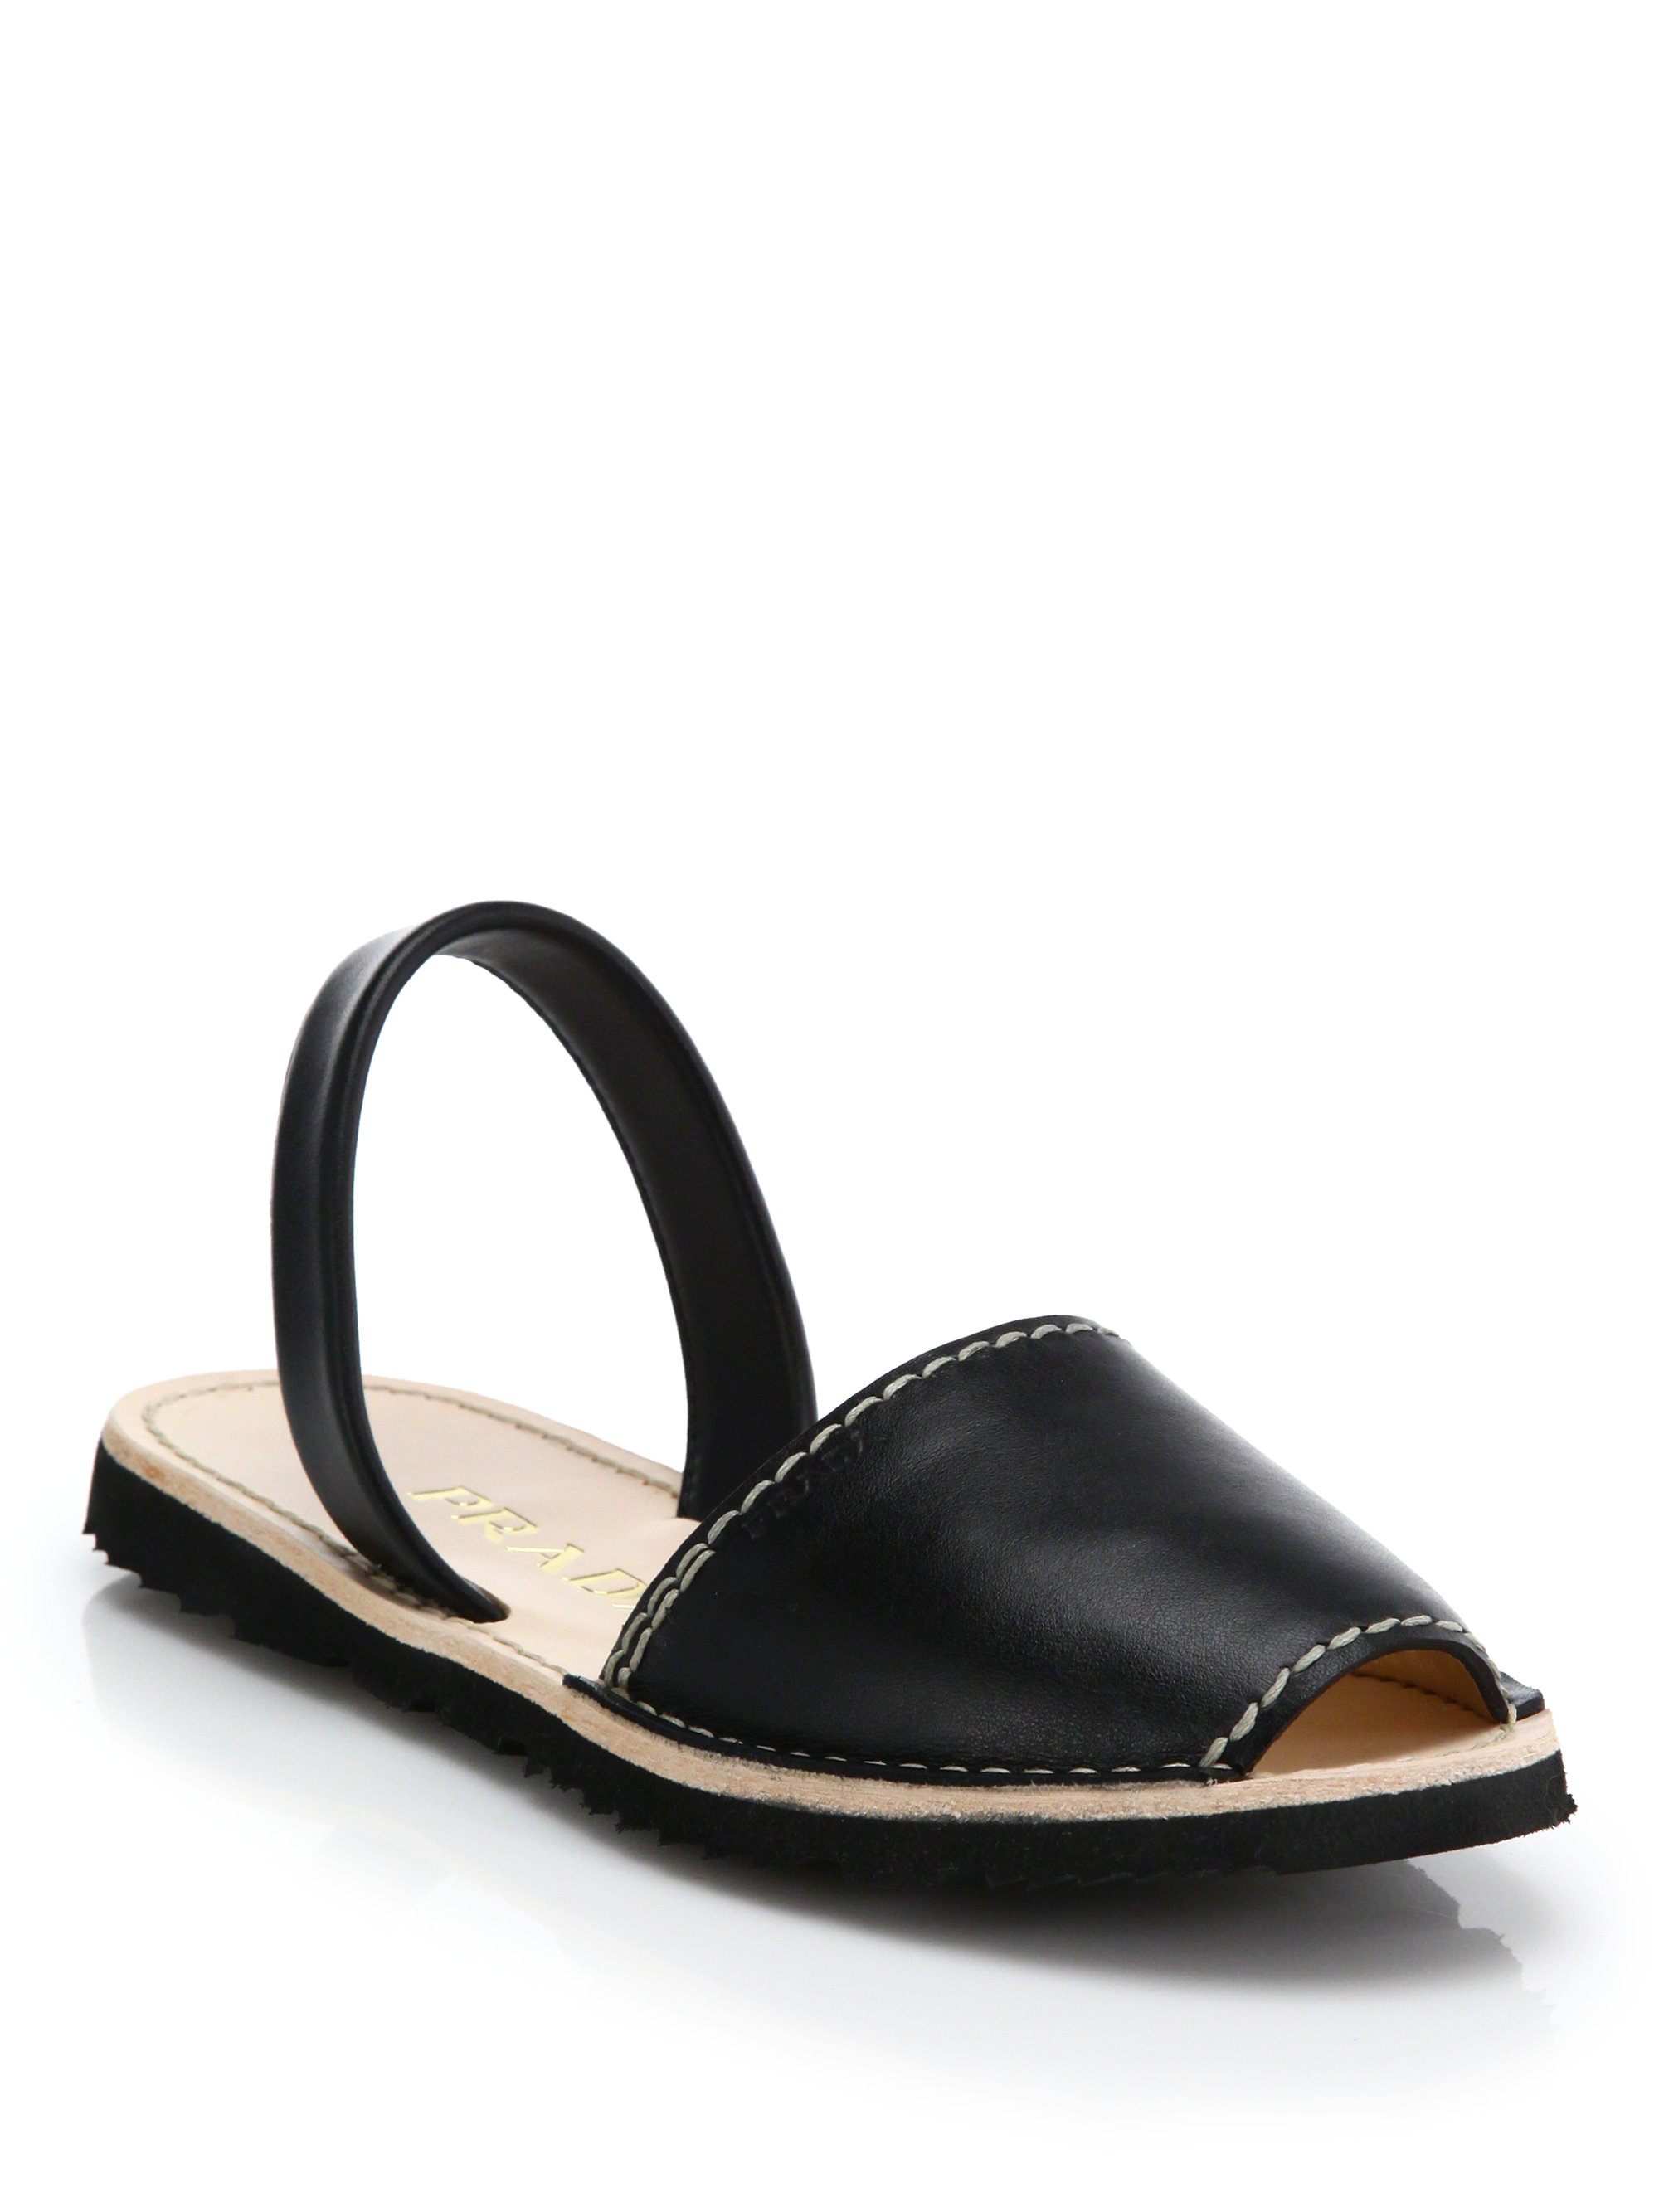 Prada Leather Embossed Sandals official site online wide range of cheap price top quality online largest supplier cheap online 2bos8LL0WF